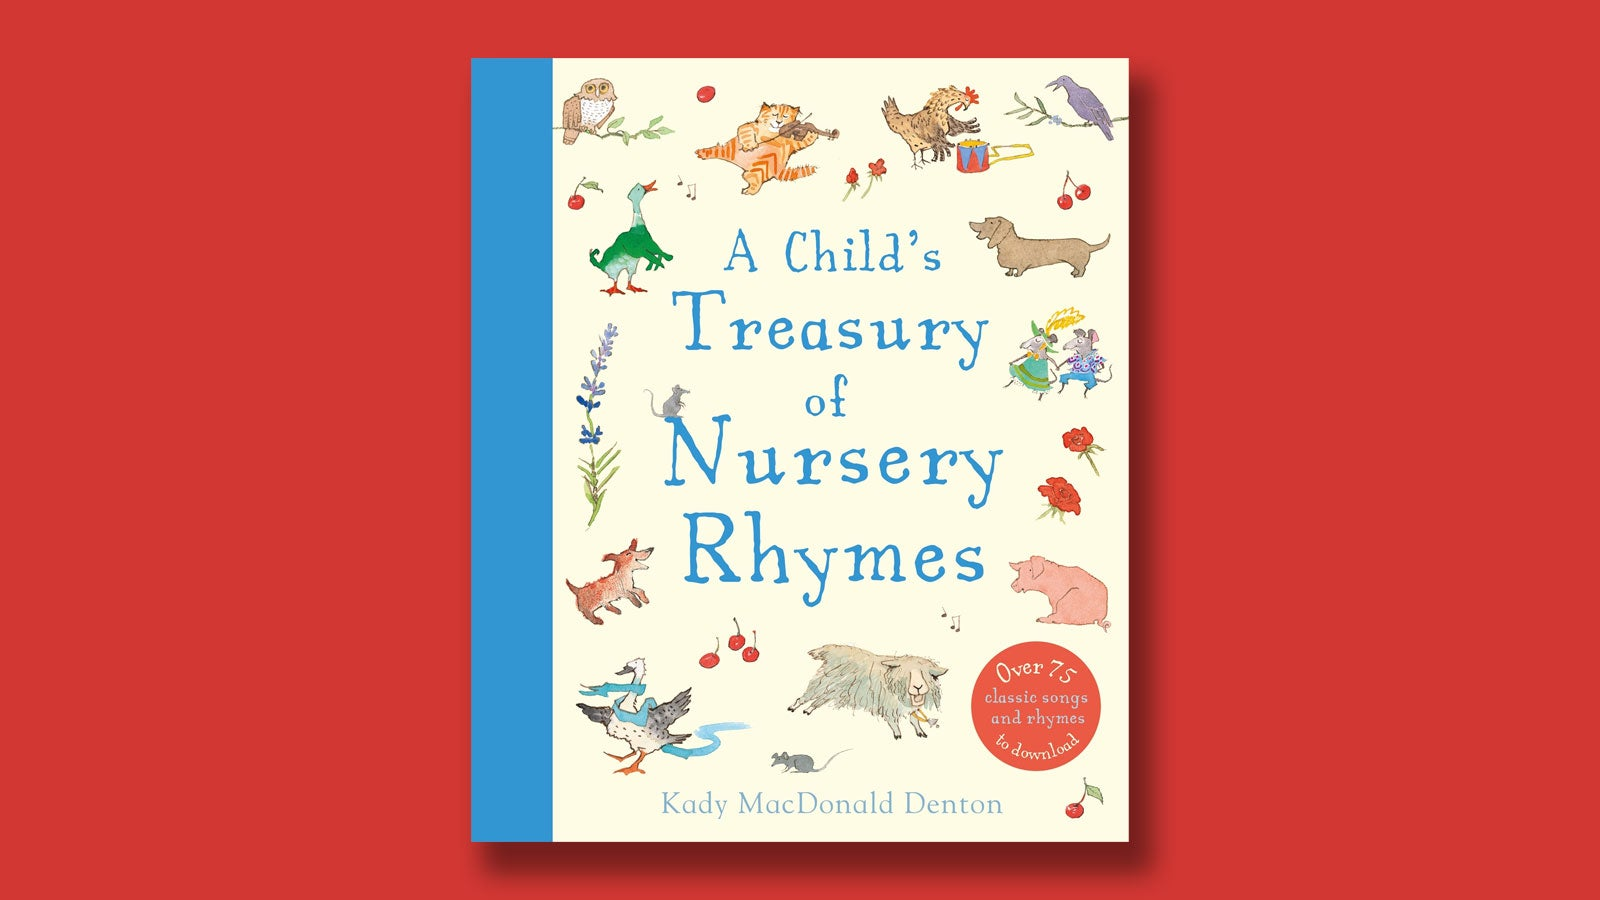 A Child's Treasury of Nursery Rhymes book cover